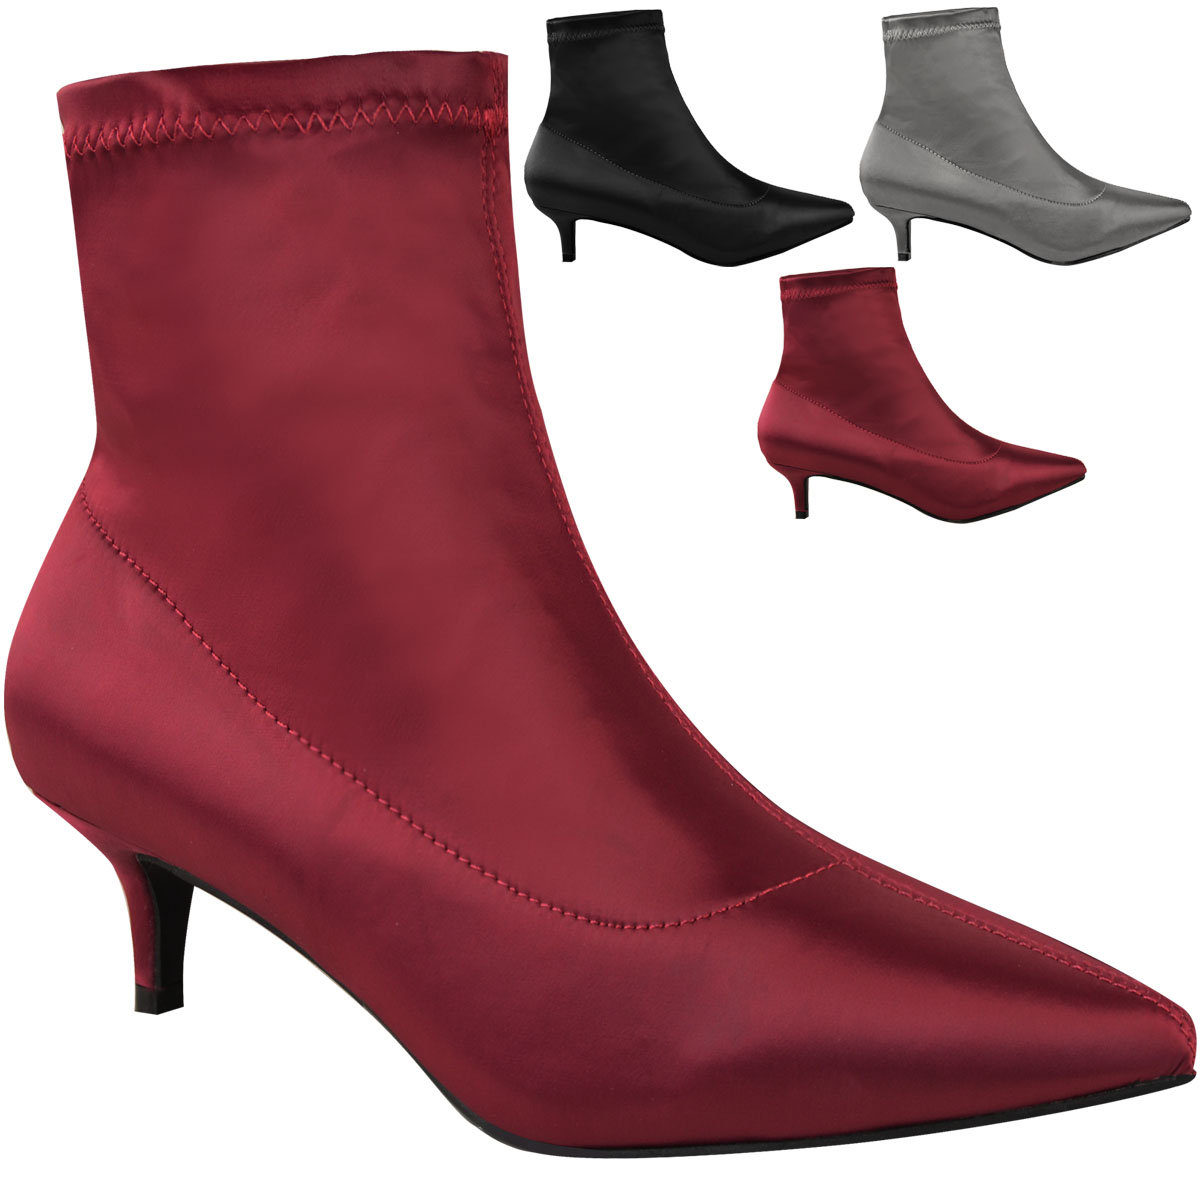 Ladies Red Black Patent Leather Mid Kitten Heel Ankle Boots Pointed Toe Shoes